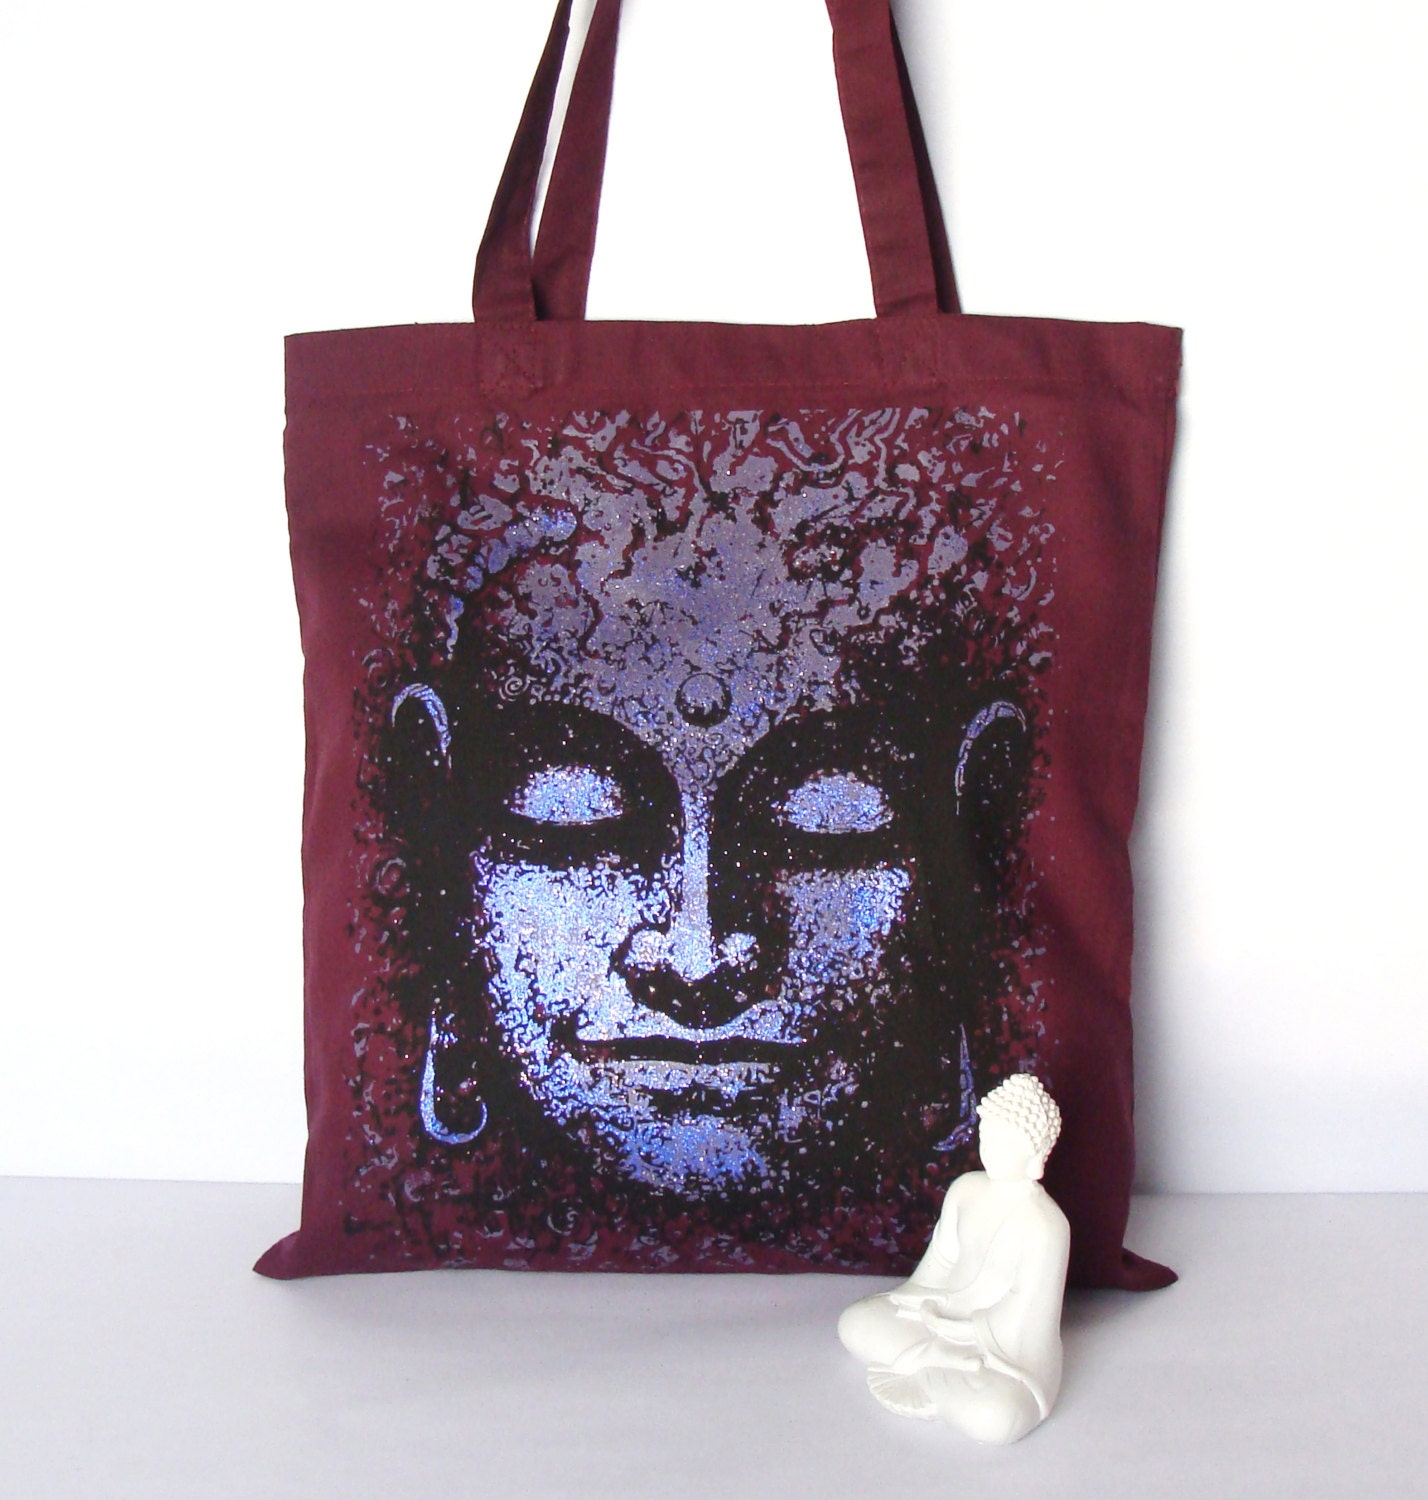 bag buddhist personals In a bag on the street the bogs are stinking in the county hotel  the buddhist or sikh give me a prod give me a mick a.